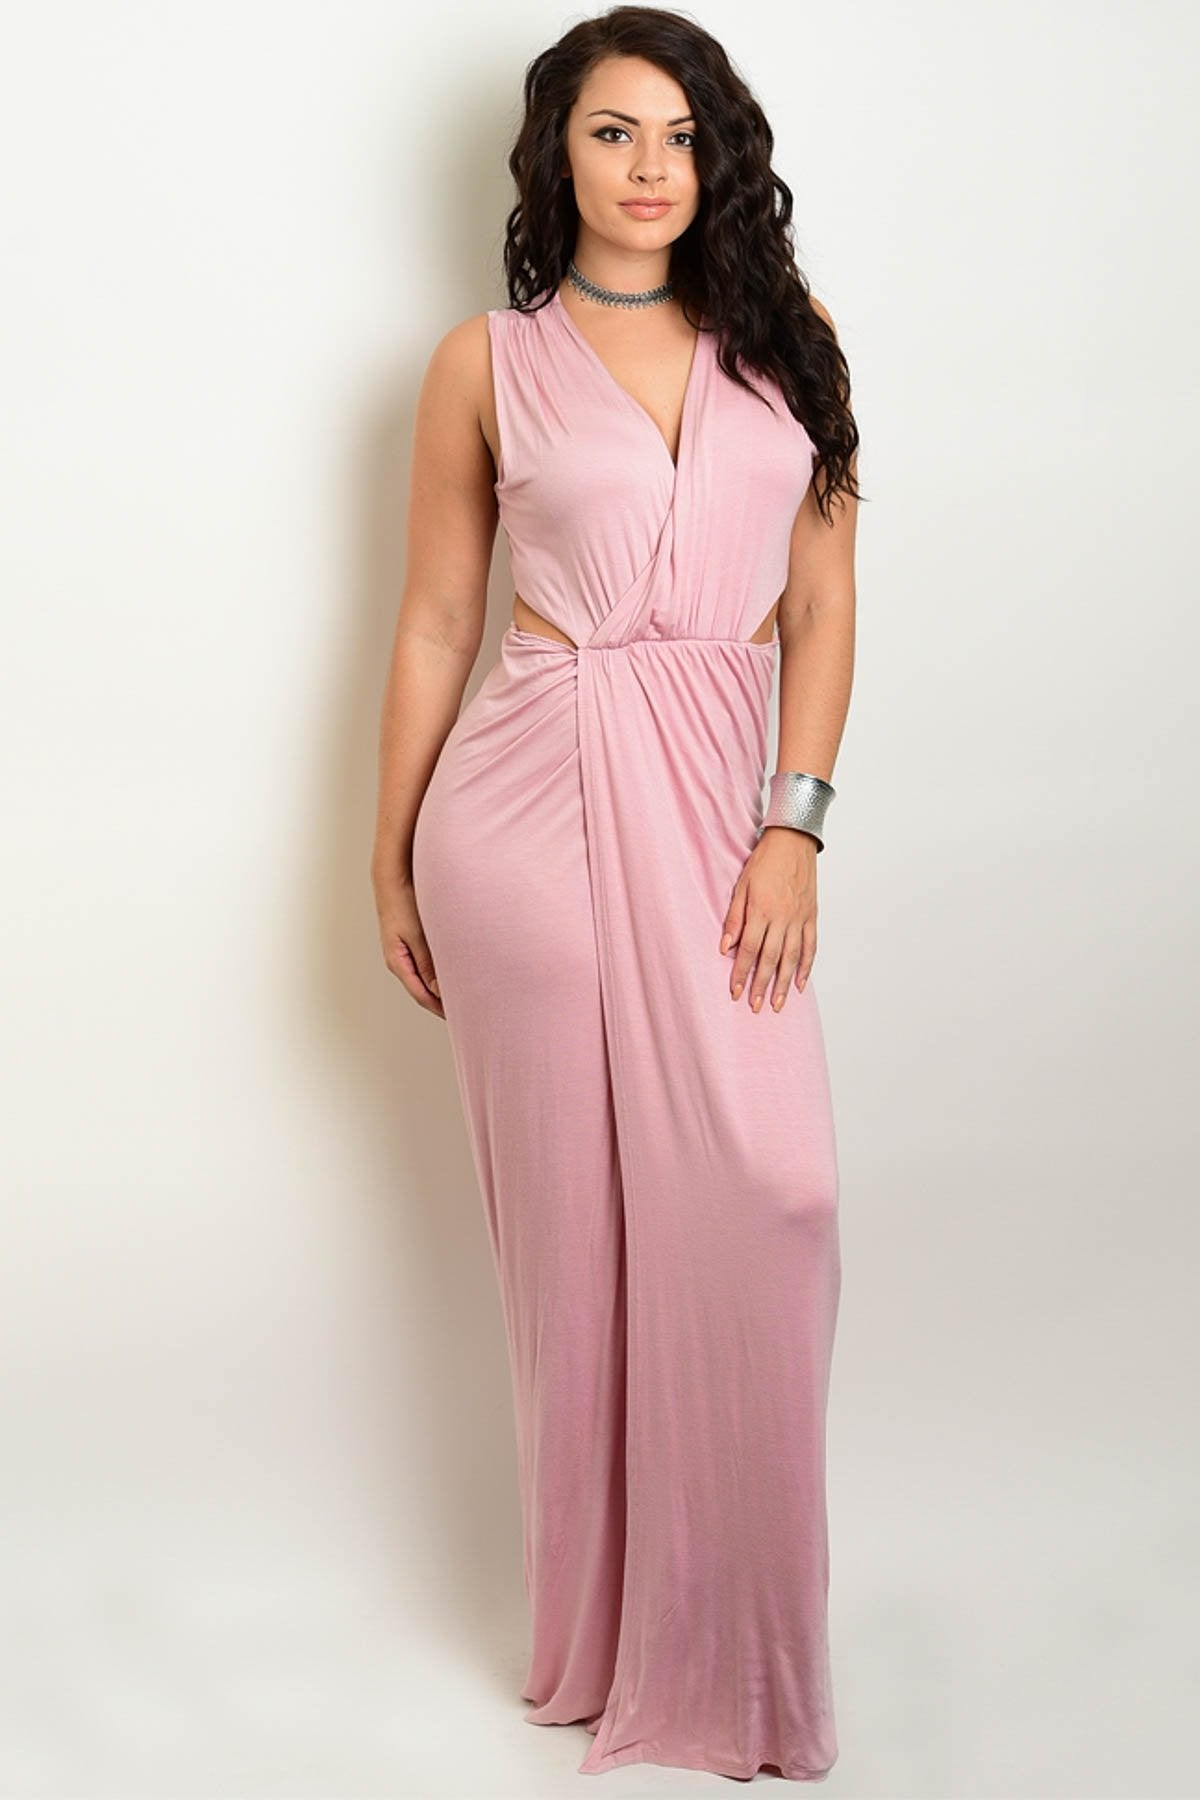 Julissa Cut Out Maxi Dress - Pink - Plus Dress